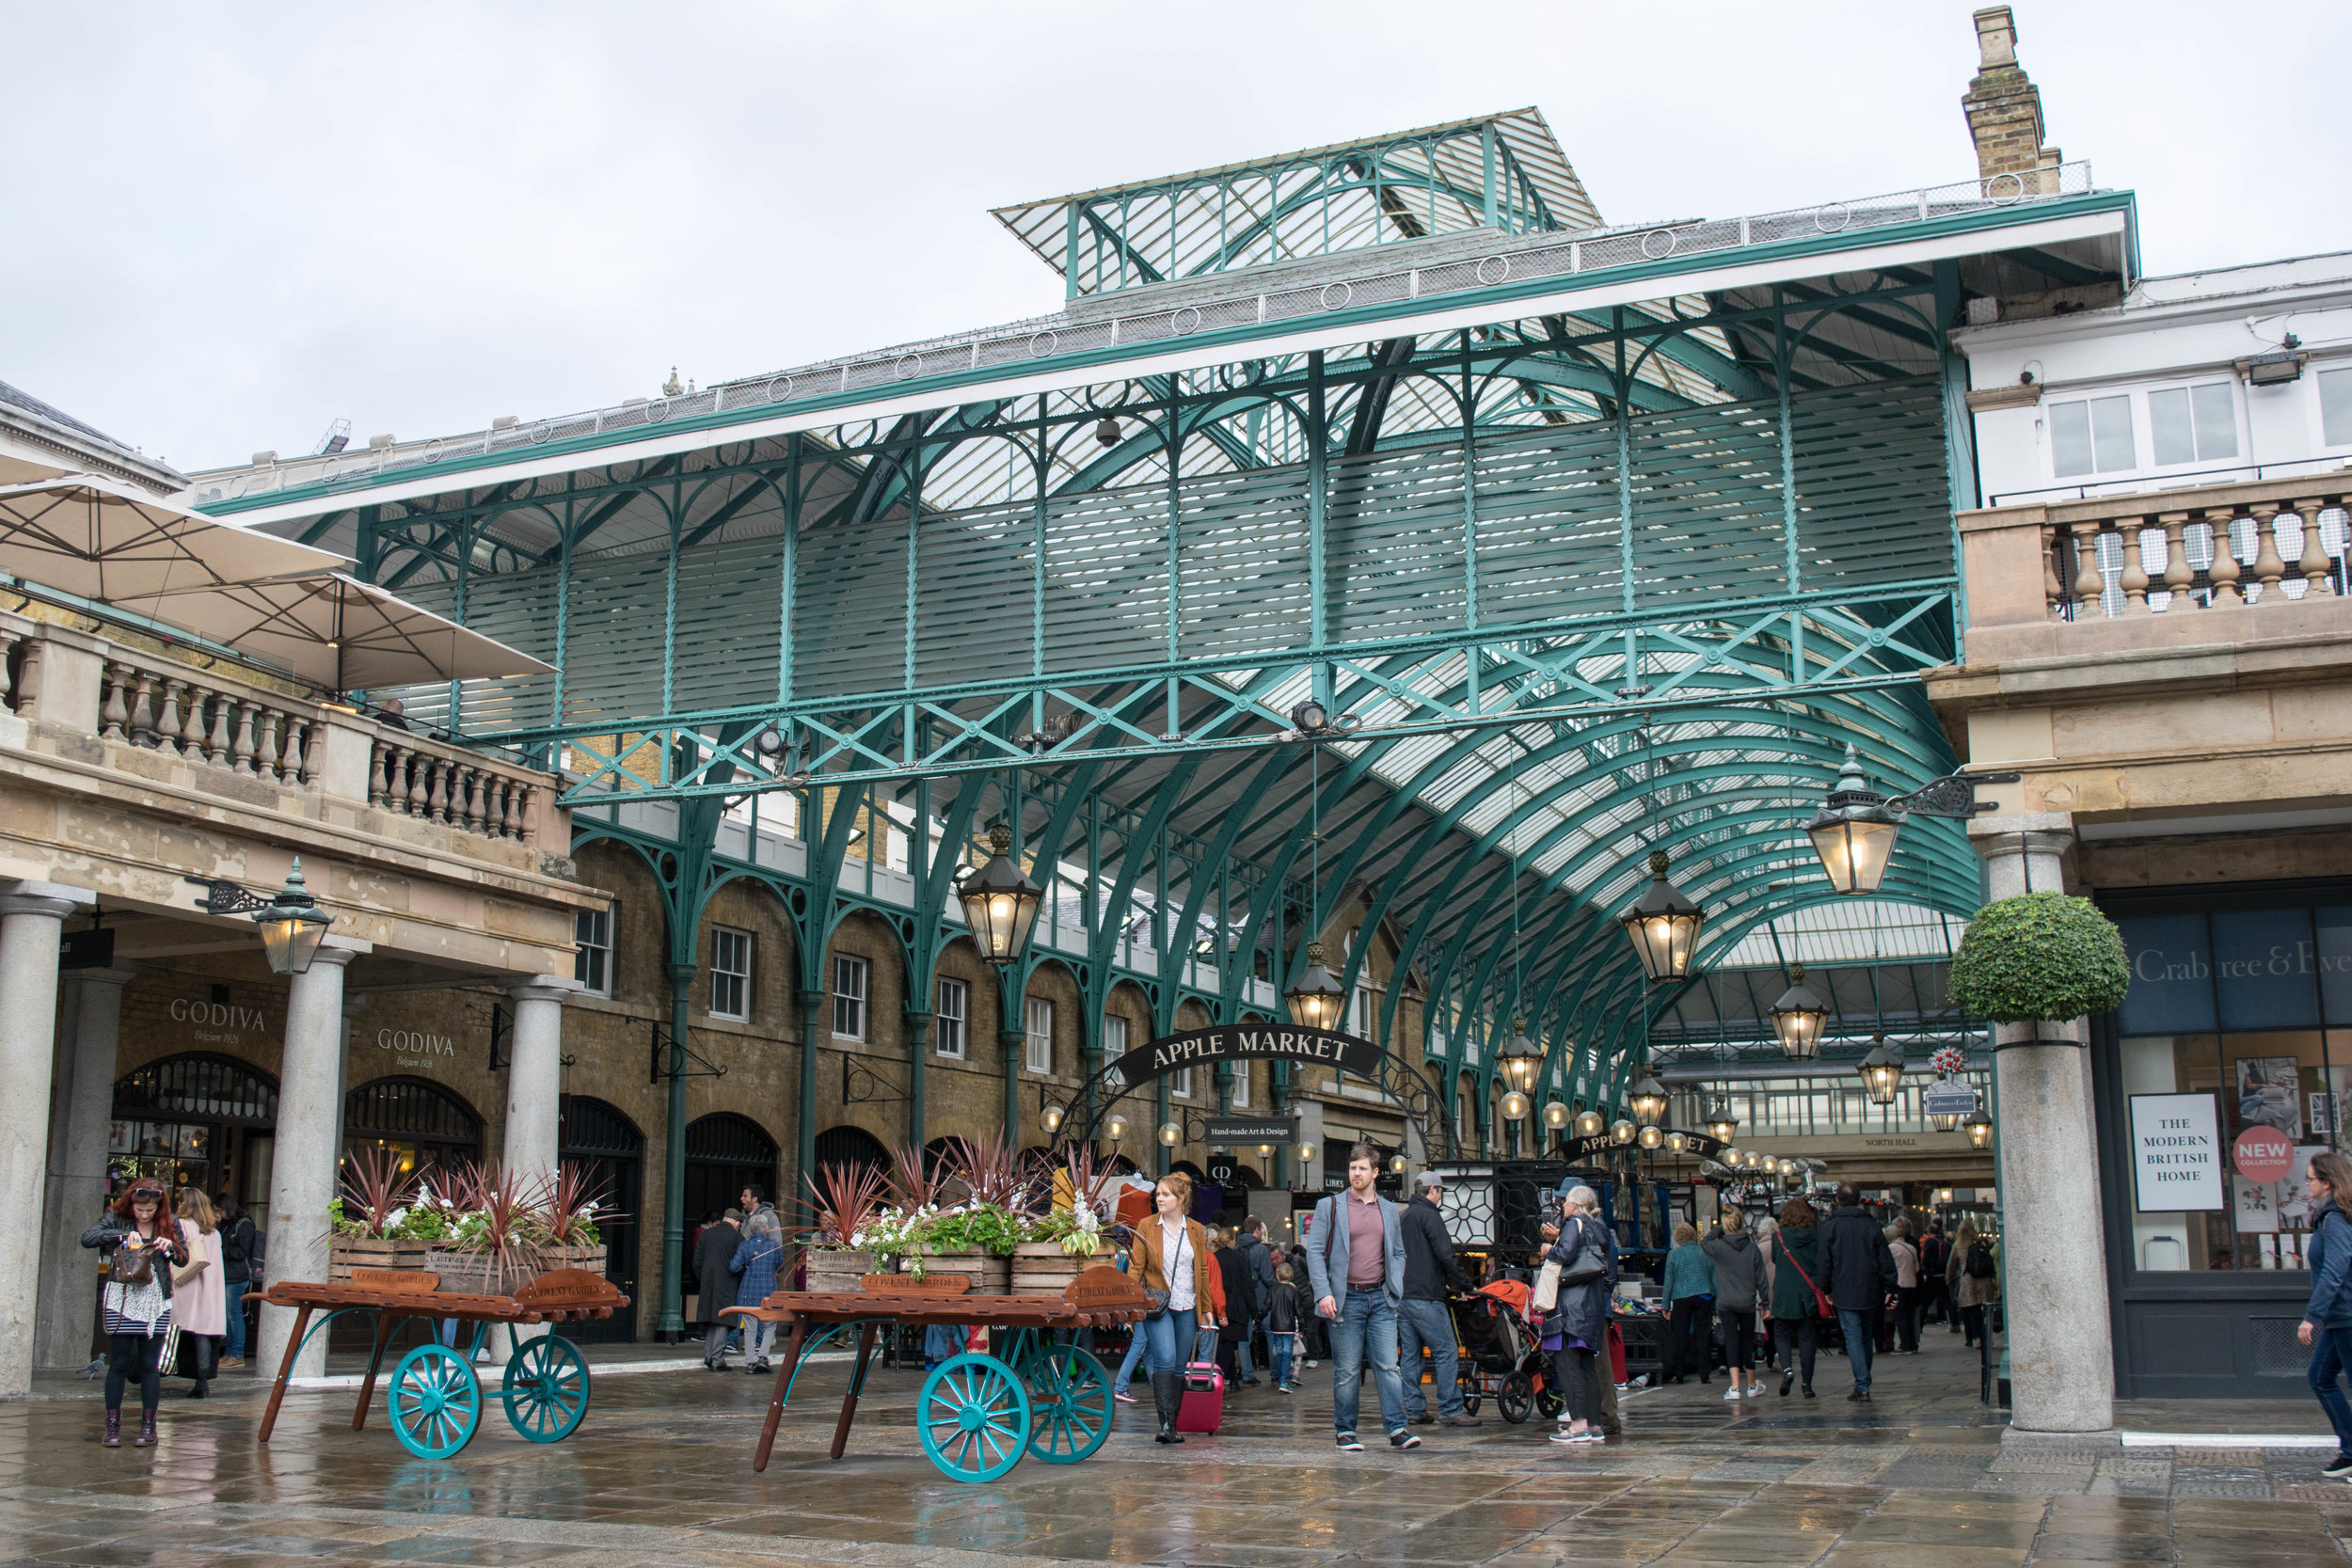 The Apple Market in Covent Garden